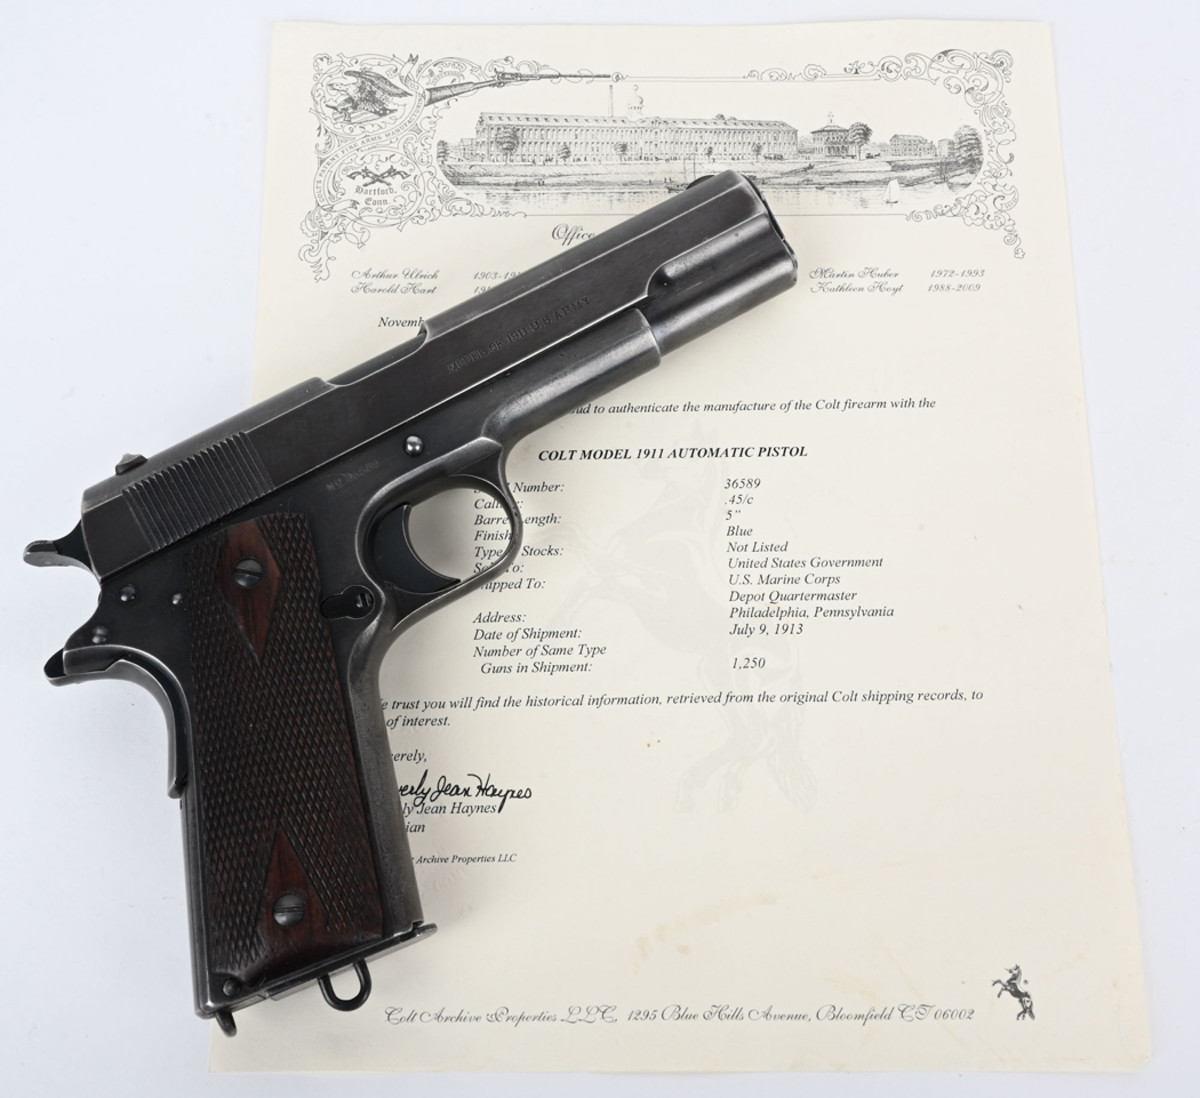 High-condition Colt 1911 with documentation, .45 ACP, one of only 1,250 such pistols shipped to US Marine Corps' Philadelphia depot on July 9, 1913. Stamped 'UNITED STATES PROPERTY' and 'MODEL OF 1911 U.S. ARMY.' Sold for $18,000, the predicted high estimate.